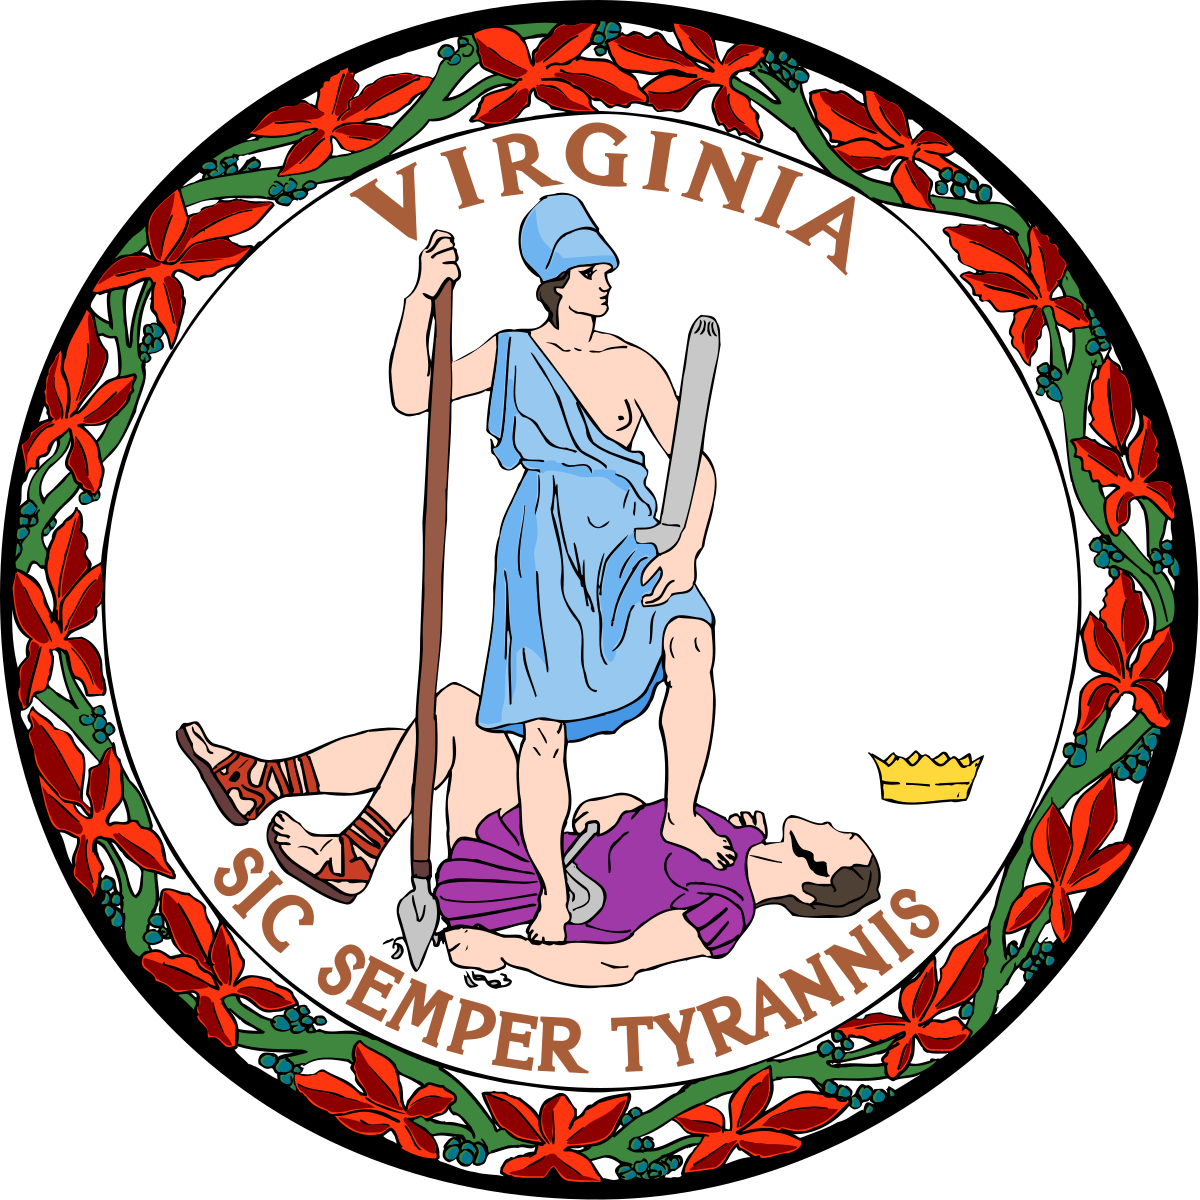 Virginia State Government's logo